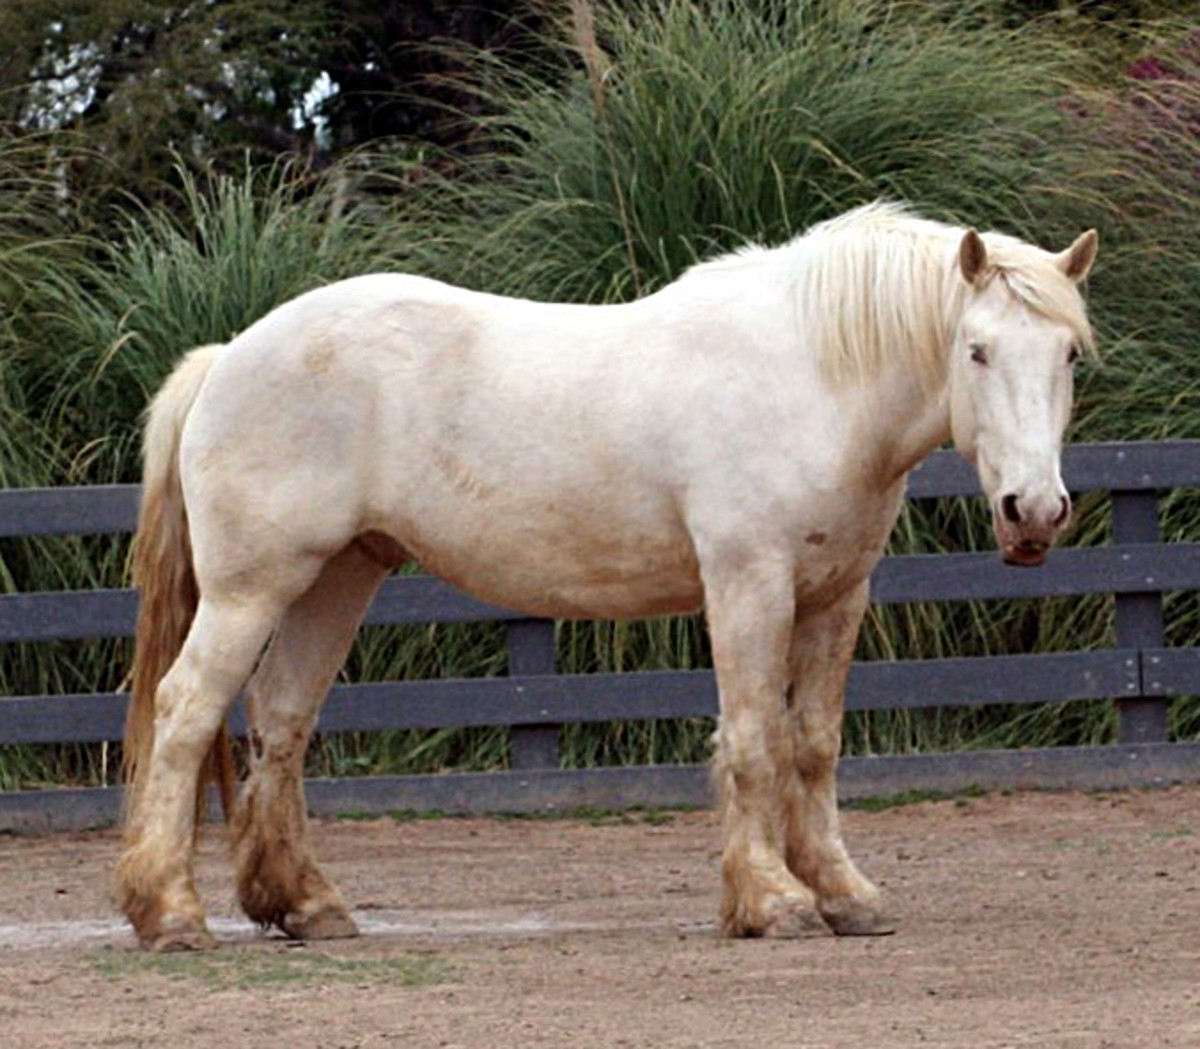 Look at the sheer size and magnificent conformation of this American Cream Draft horse!